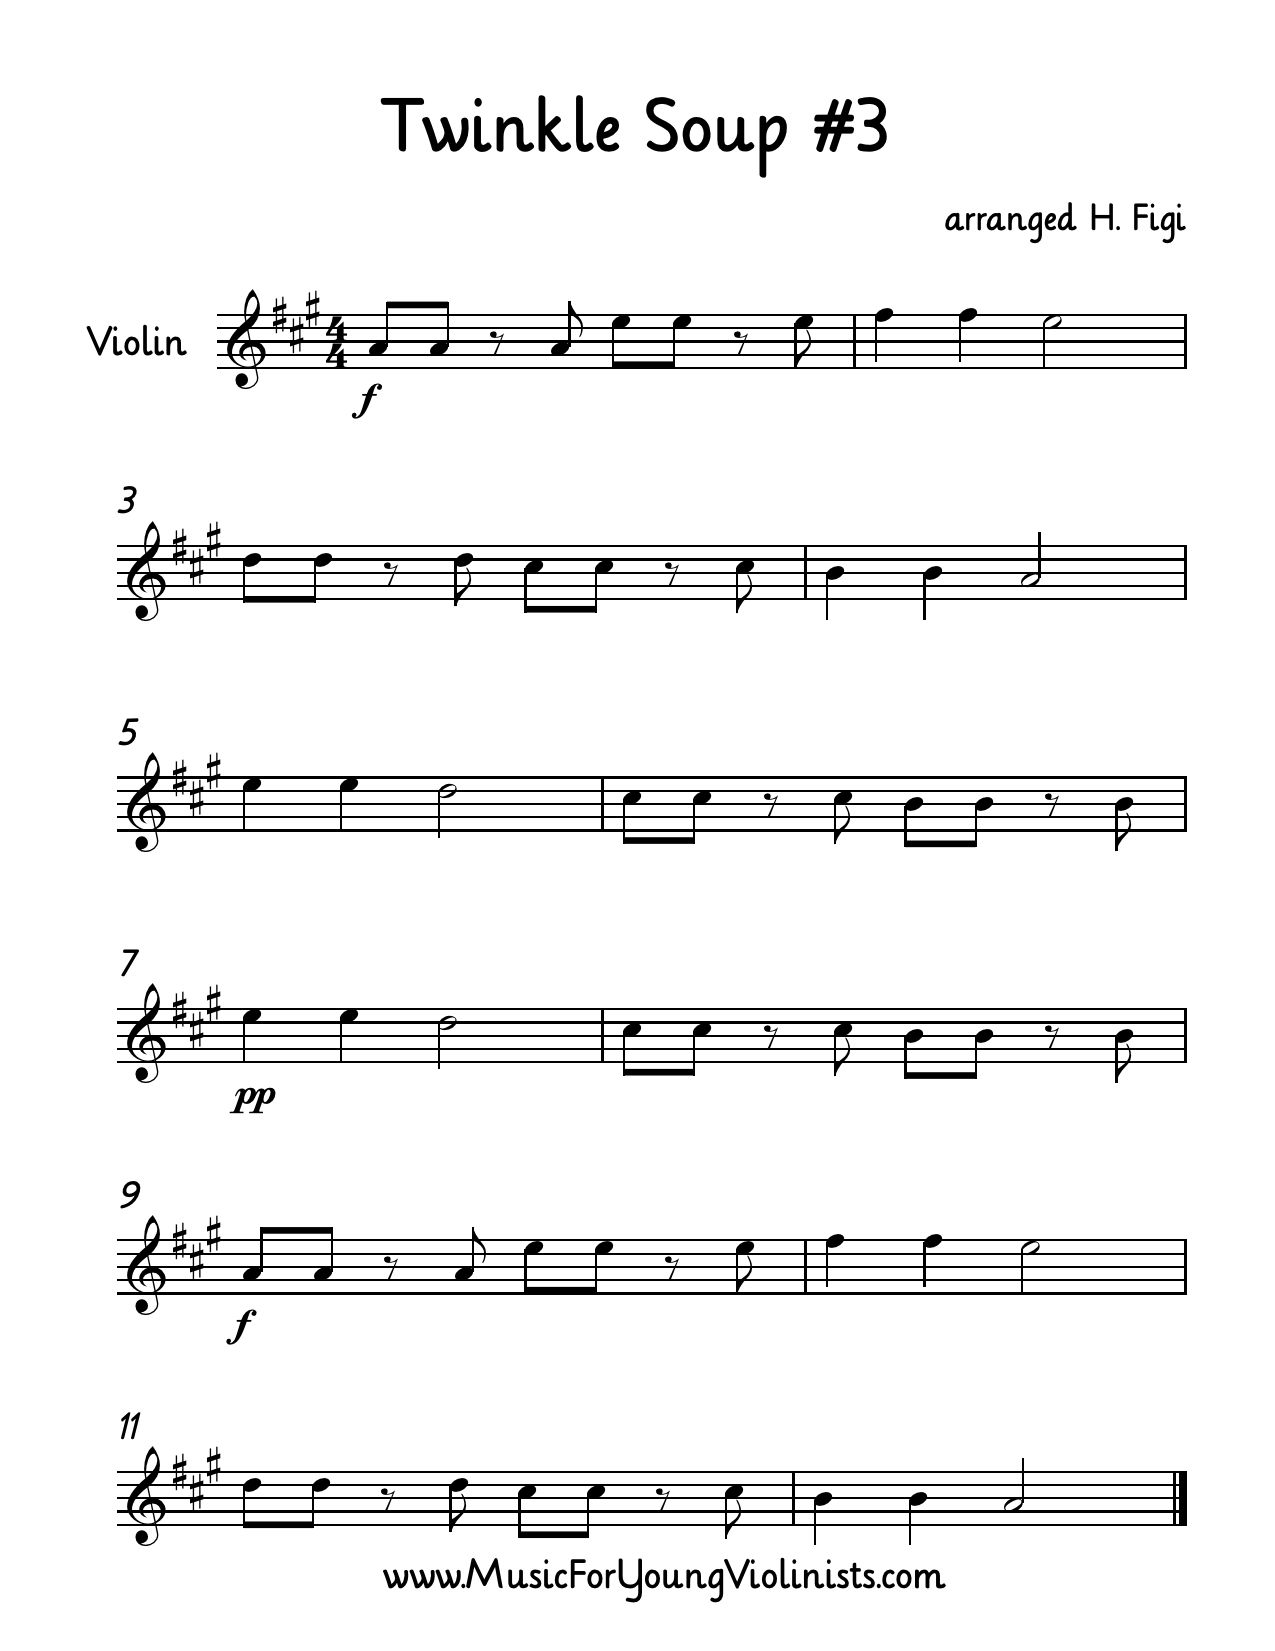 Suzuki Violin Twinkle Soup 3 Makes Great Sight Reading Material For Group Class Please Visit Our Website Violin Lessons Learning Violin Sheet Music Violin [ 1651 x 1275 Pixel ]